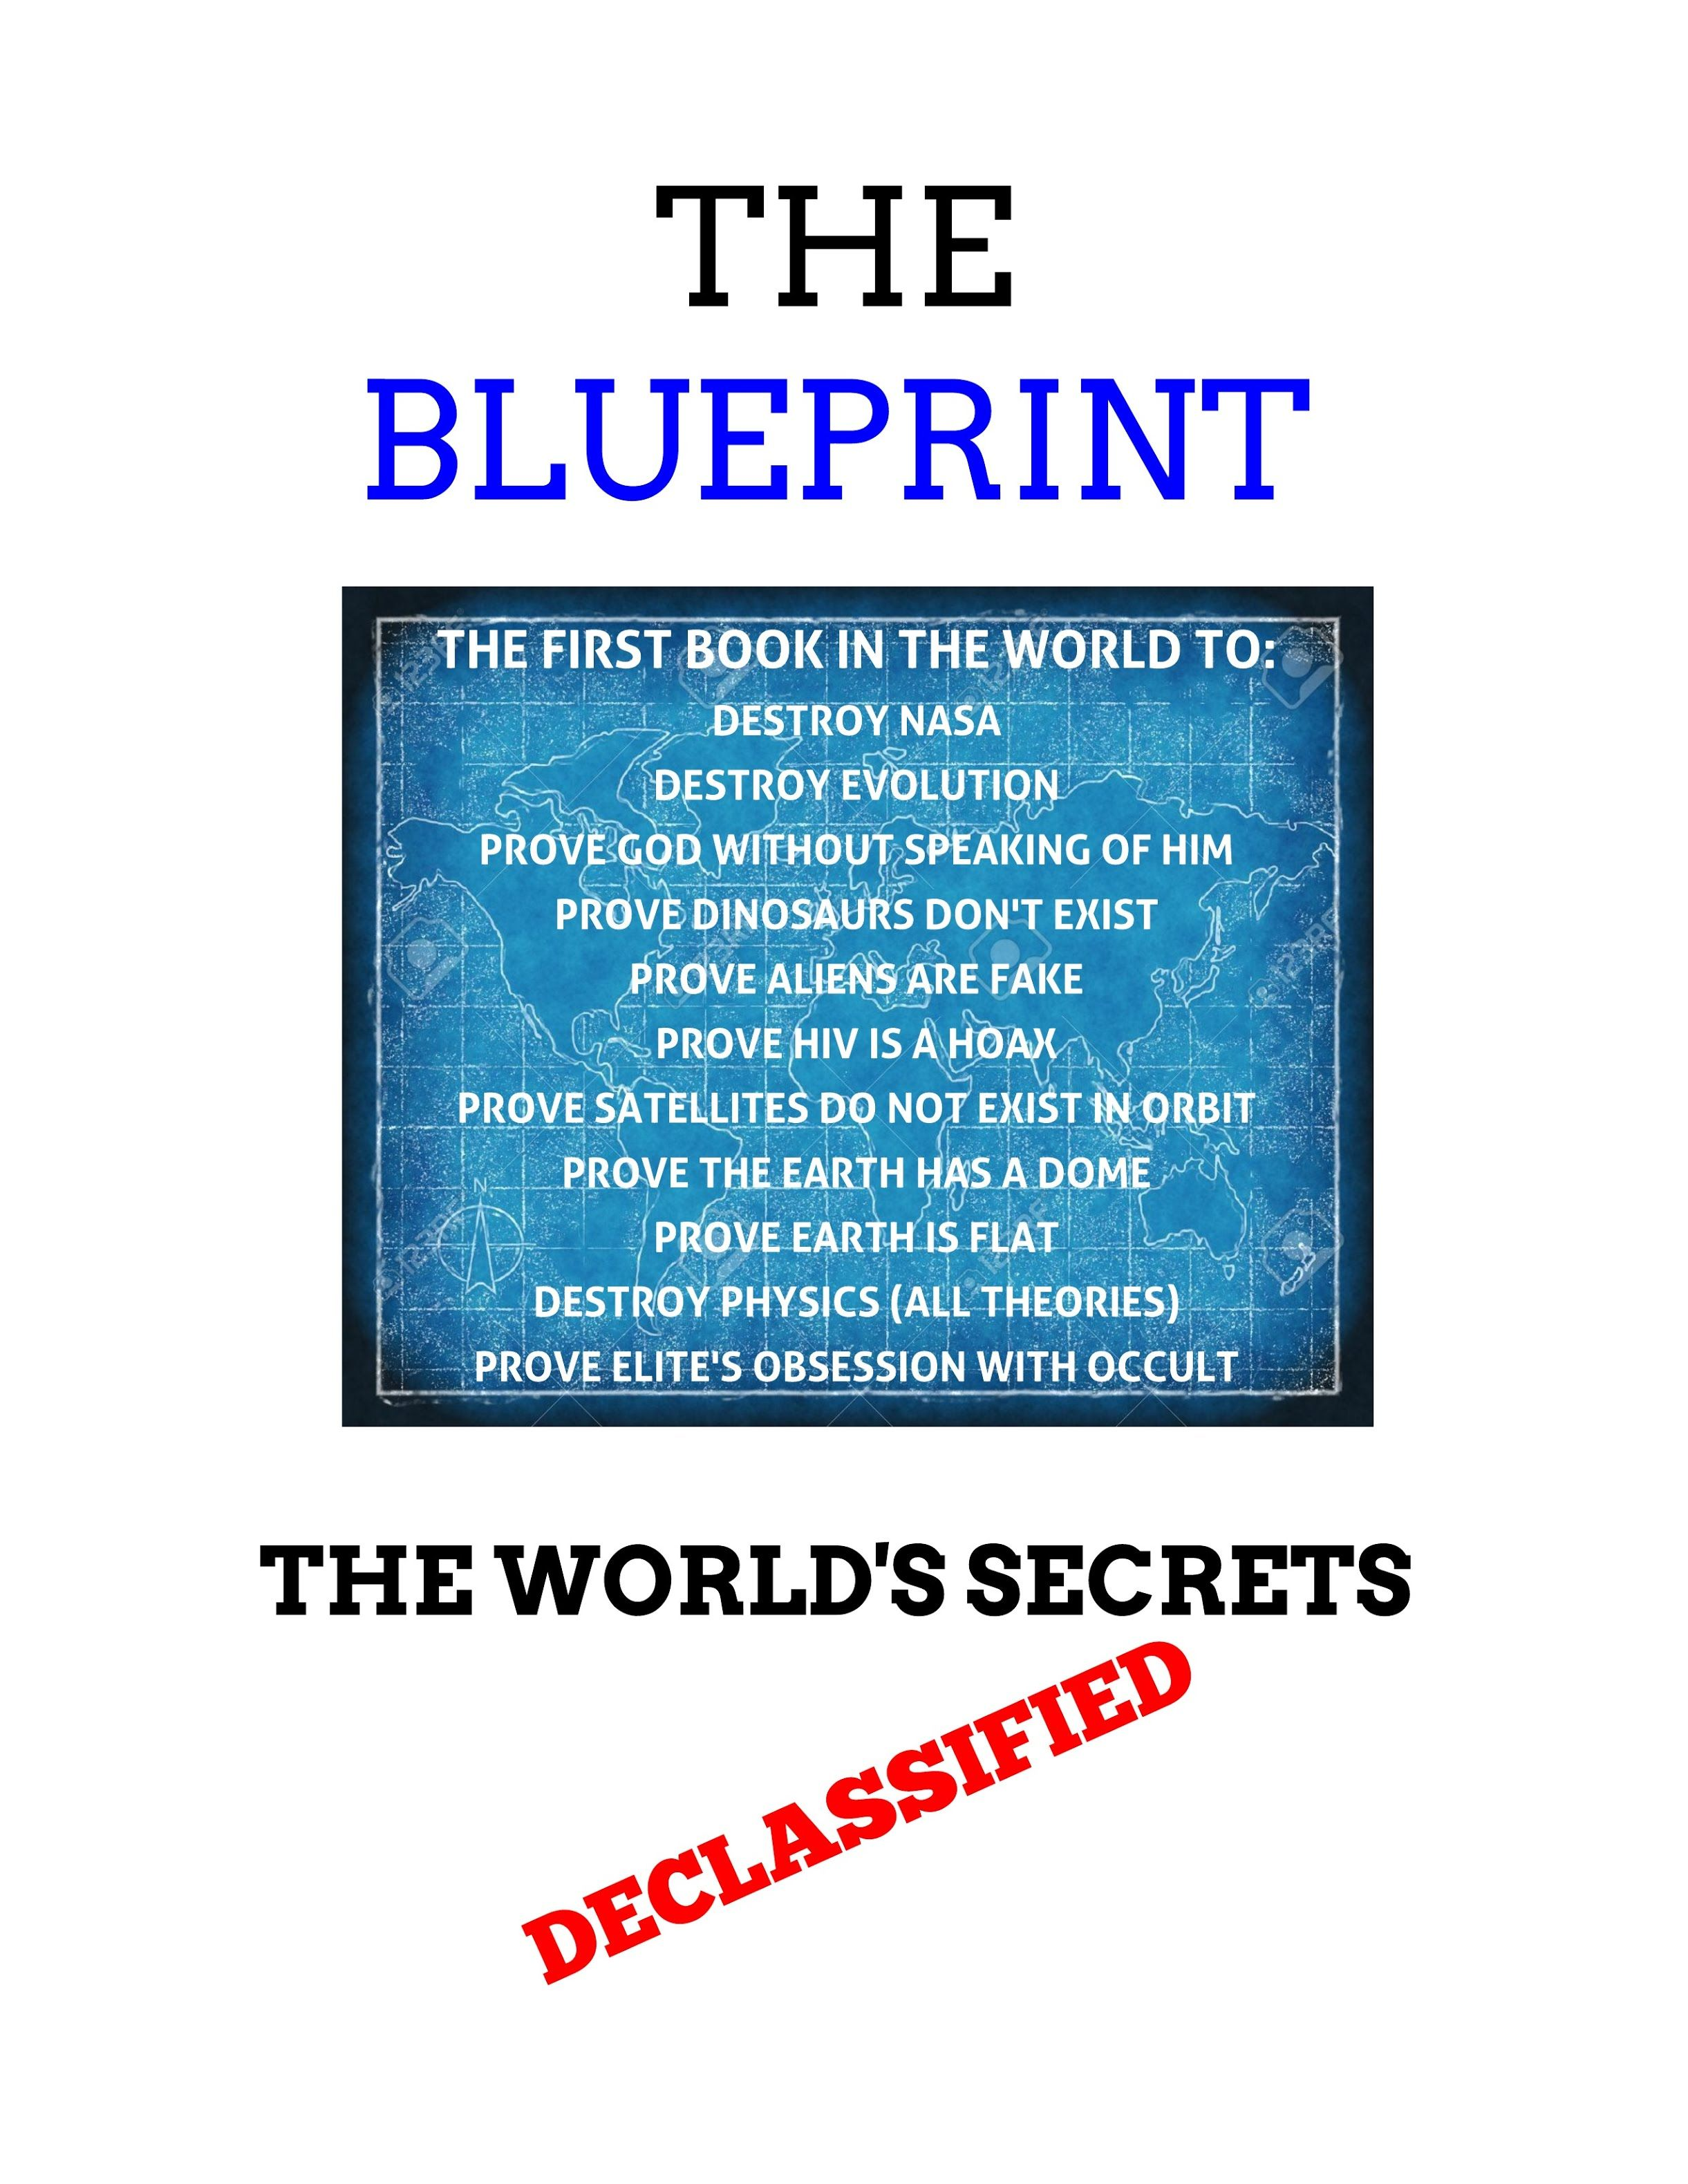 Satellites are a hoax documented proof operation blue beam is coming satellites are a hoax documented proof operation blue beam is coming malvernweather Gallery